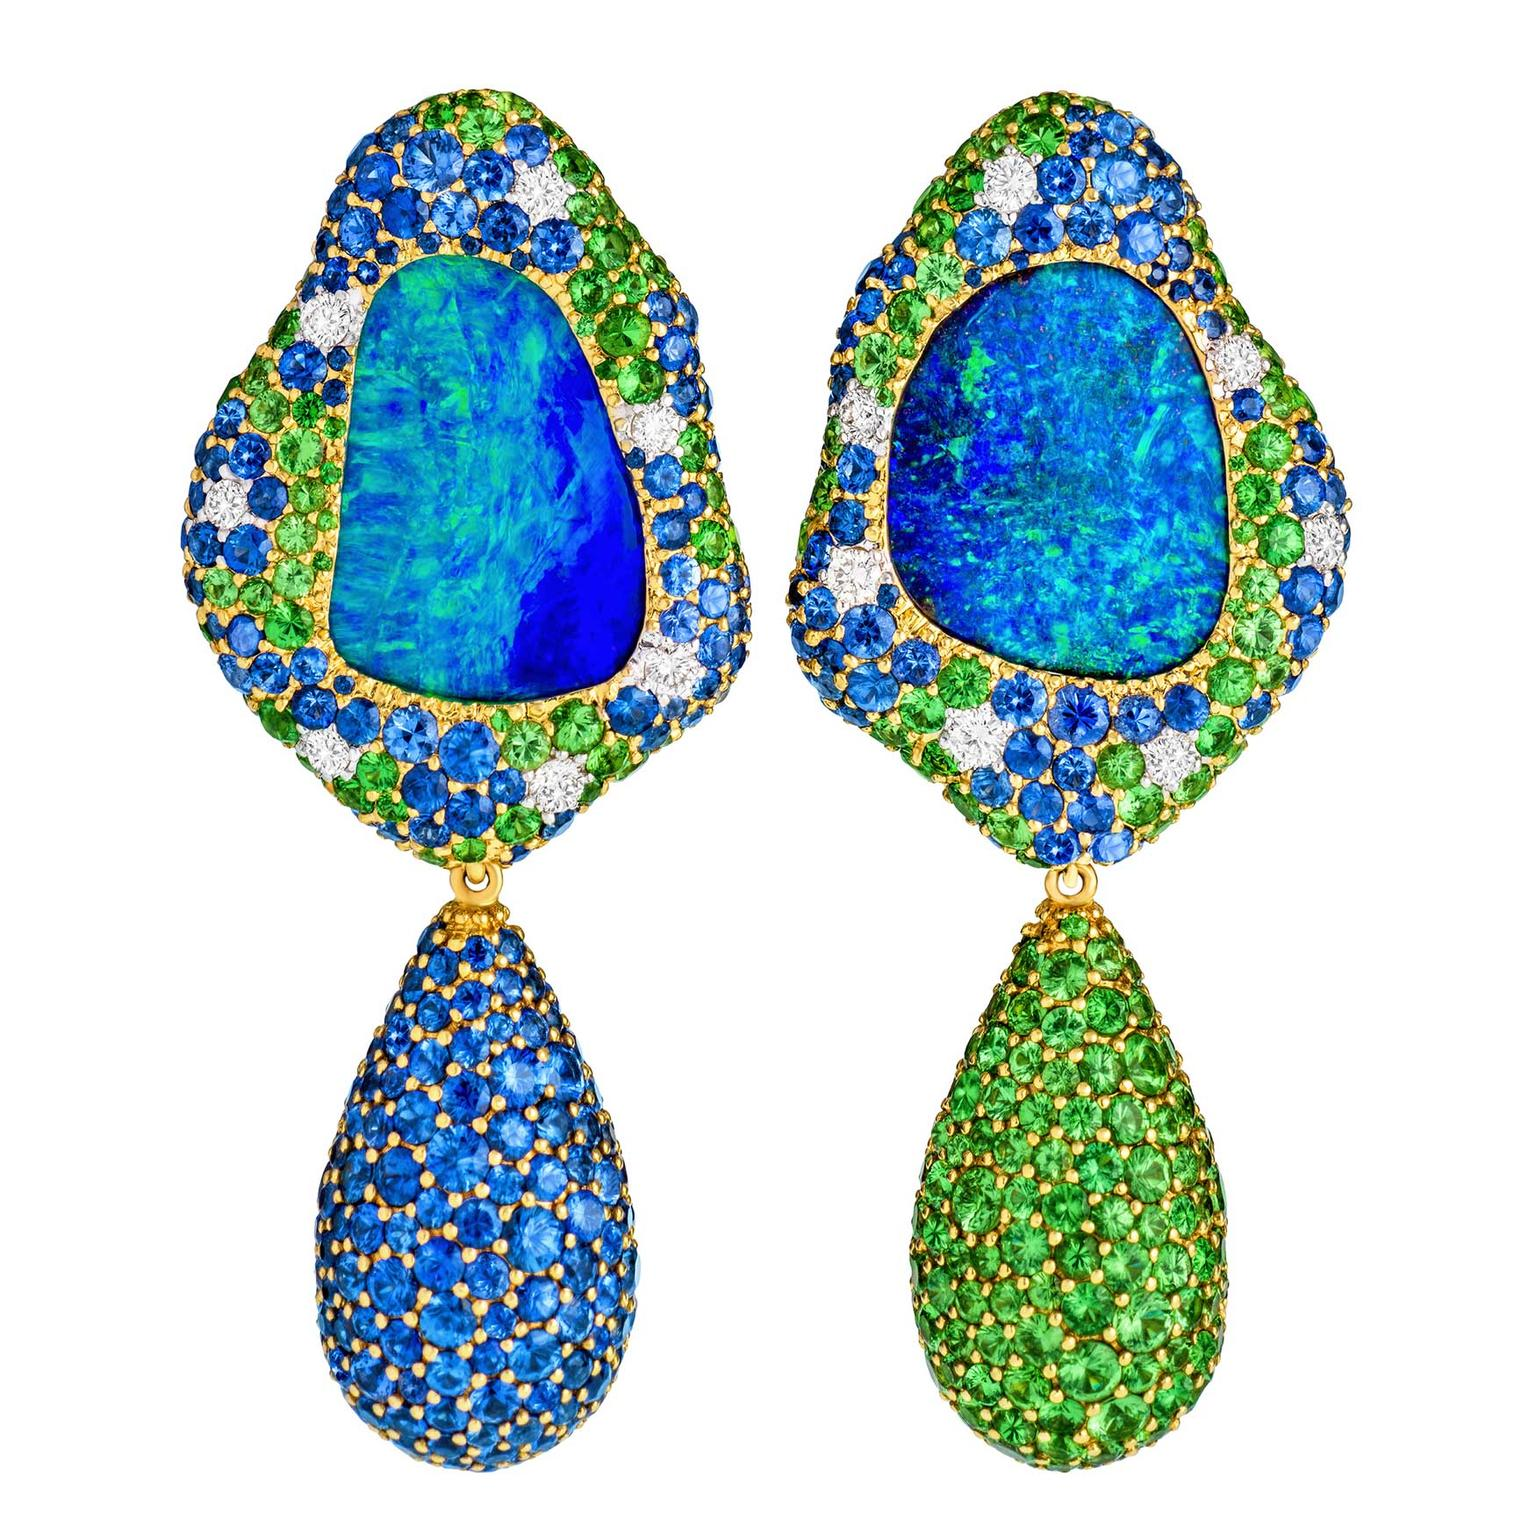 Margot McKinney Viridian Australian Lightning Ridge opal earrings with tsavorites and sapphires